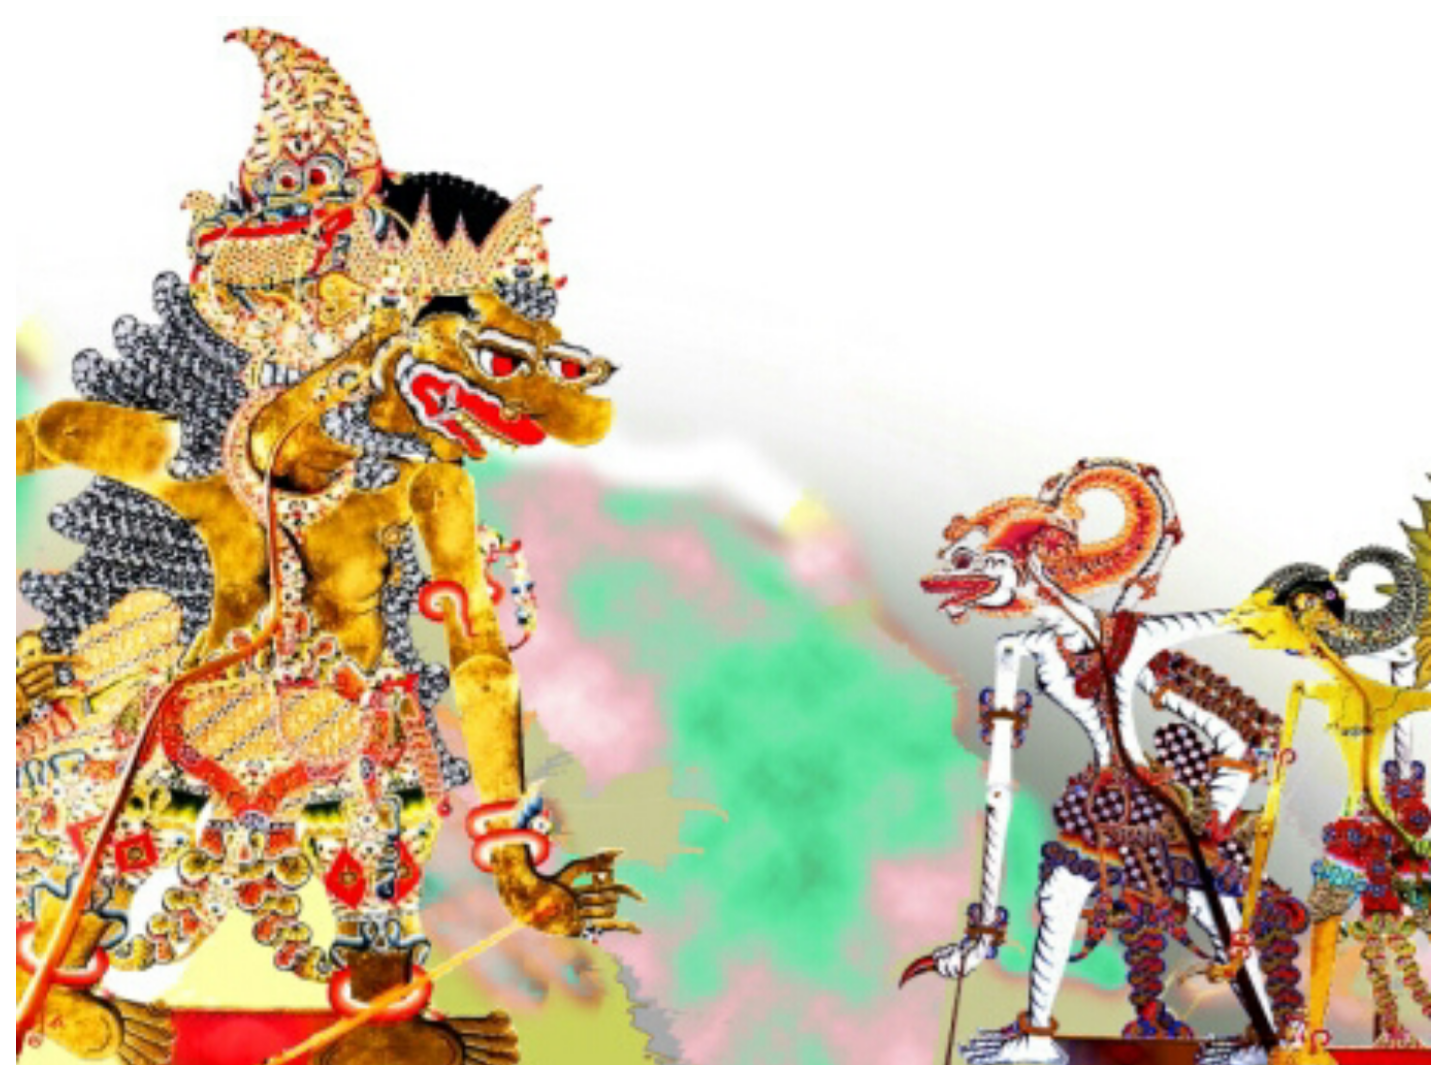 Download Wallpaper Gambar Wayang Gudang Wallpaper